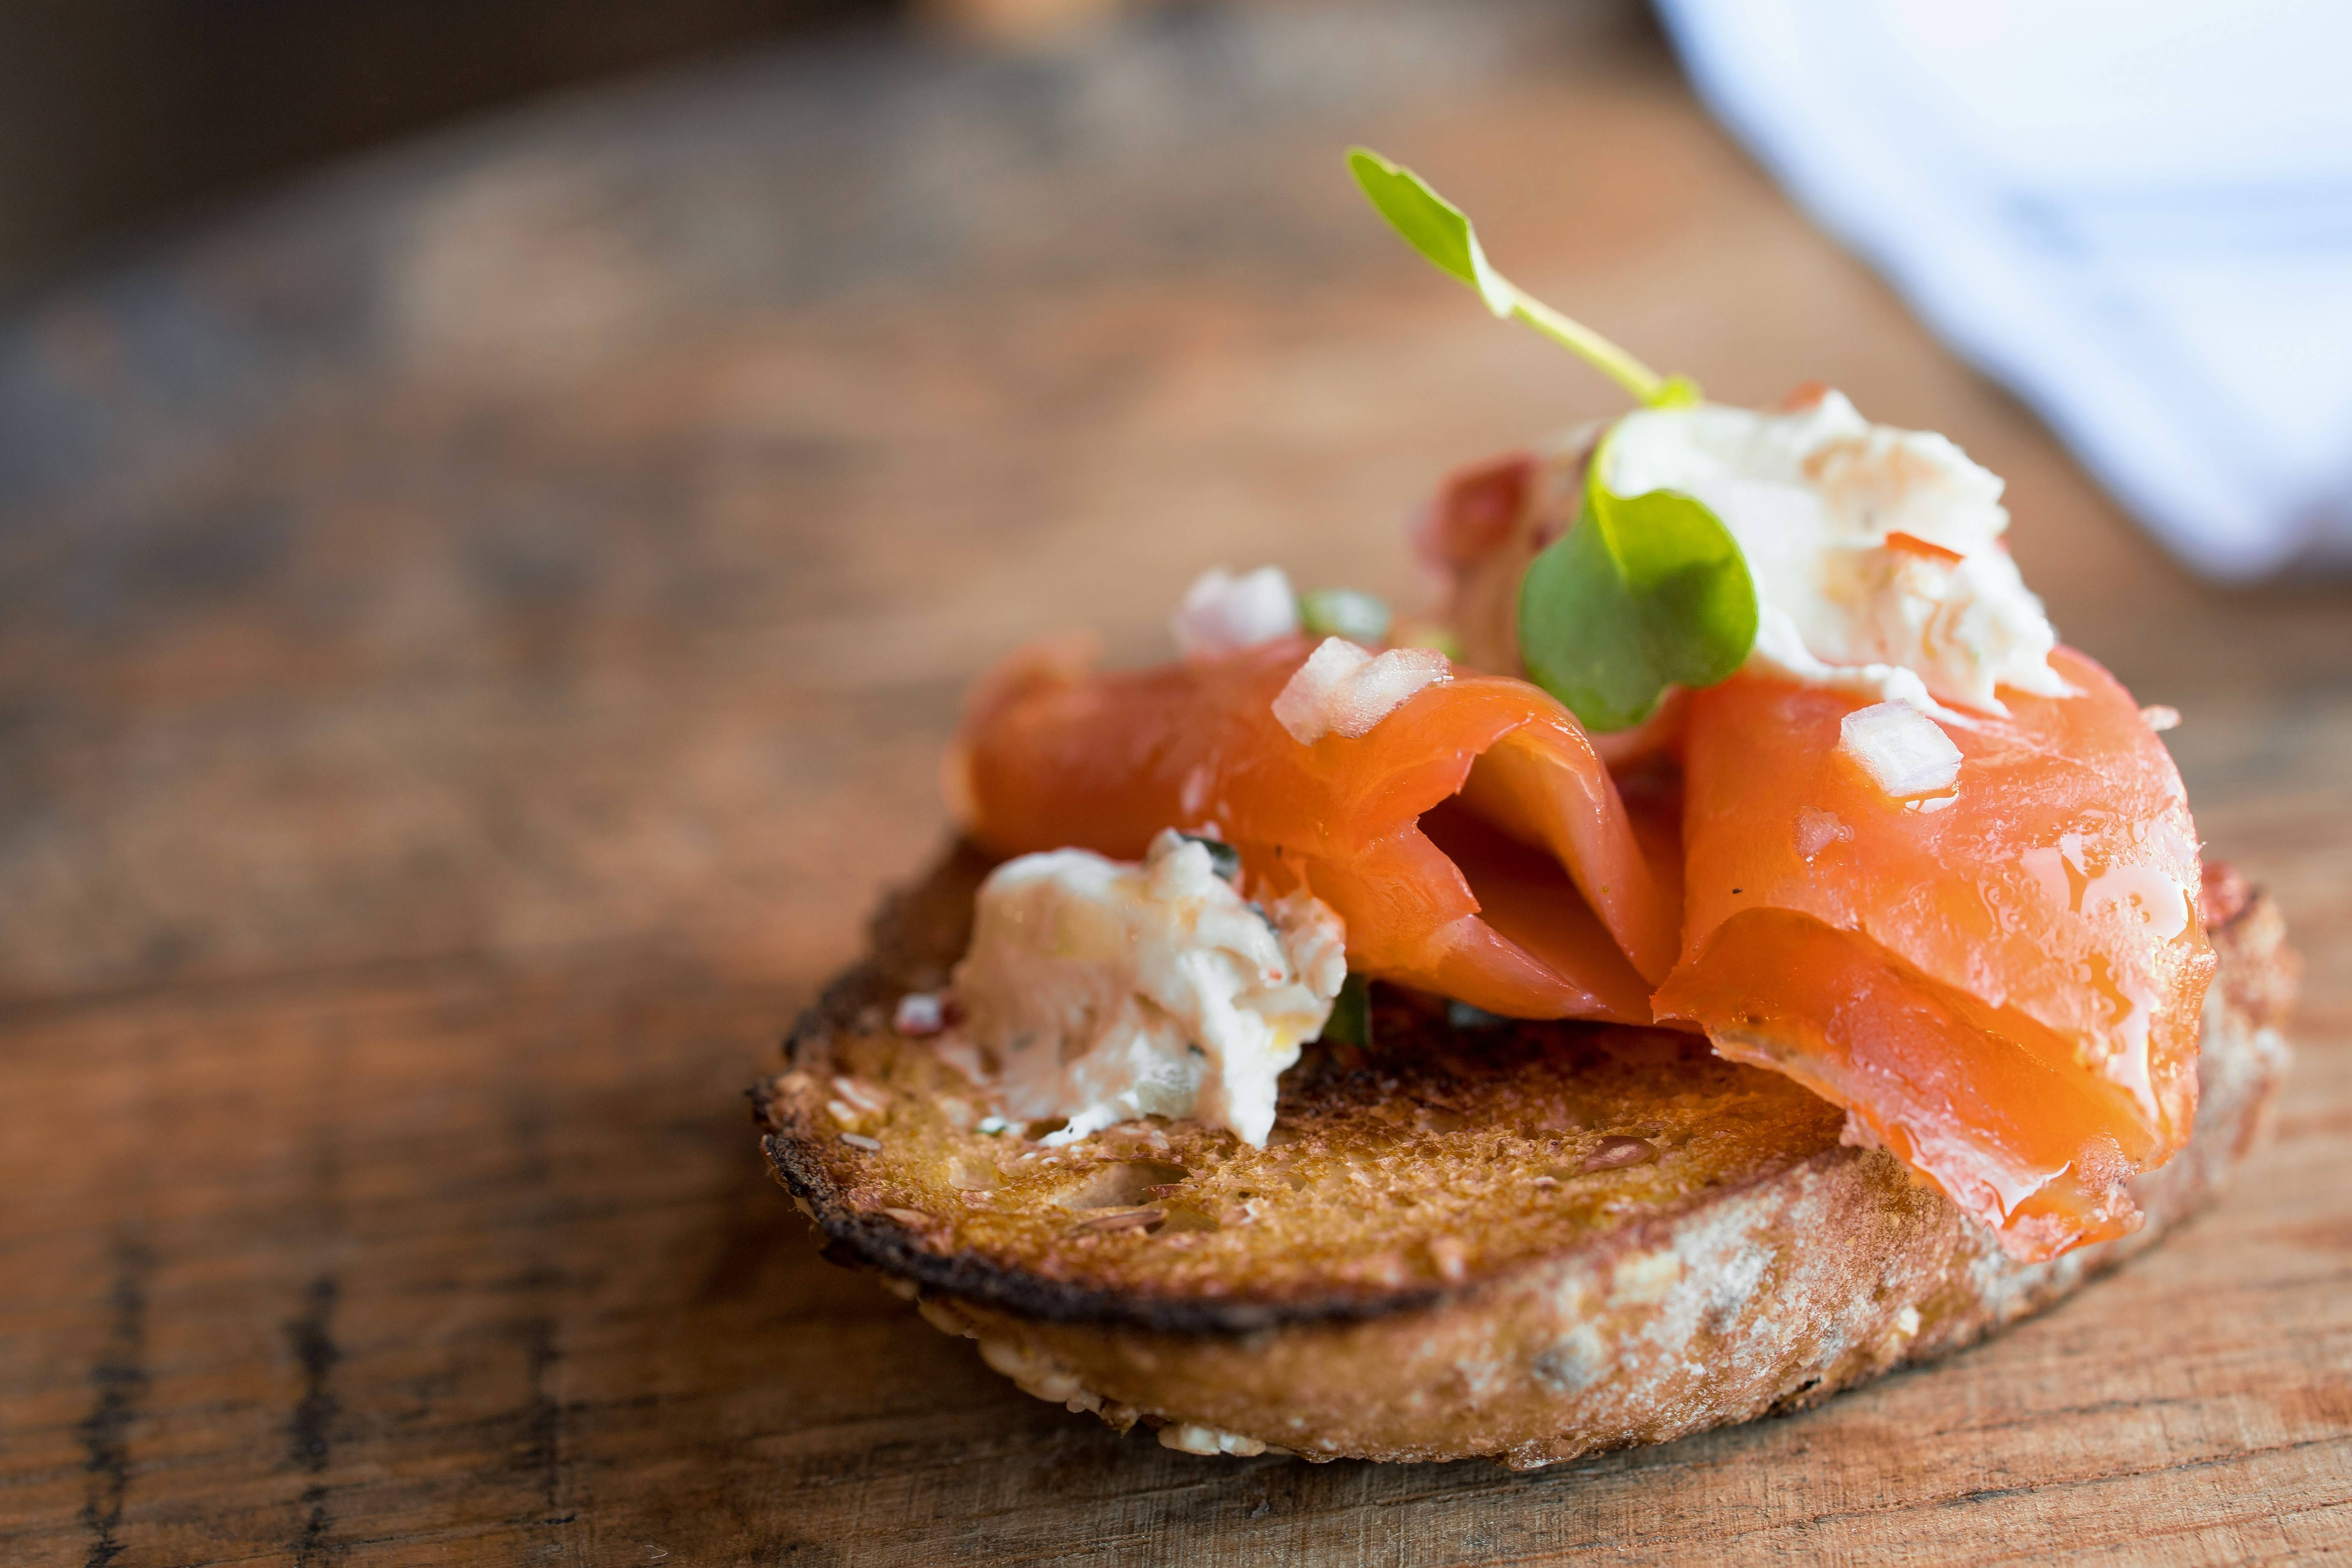 Old Irving Brewing serves its house-smoked salmon on wheat-thyme crackers.